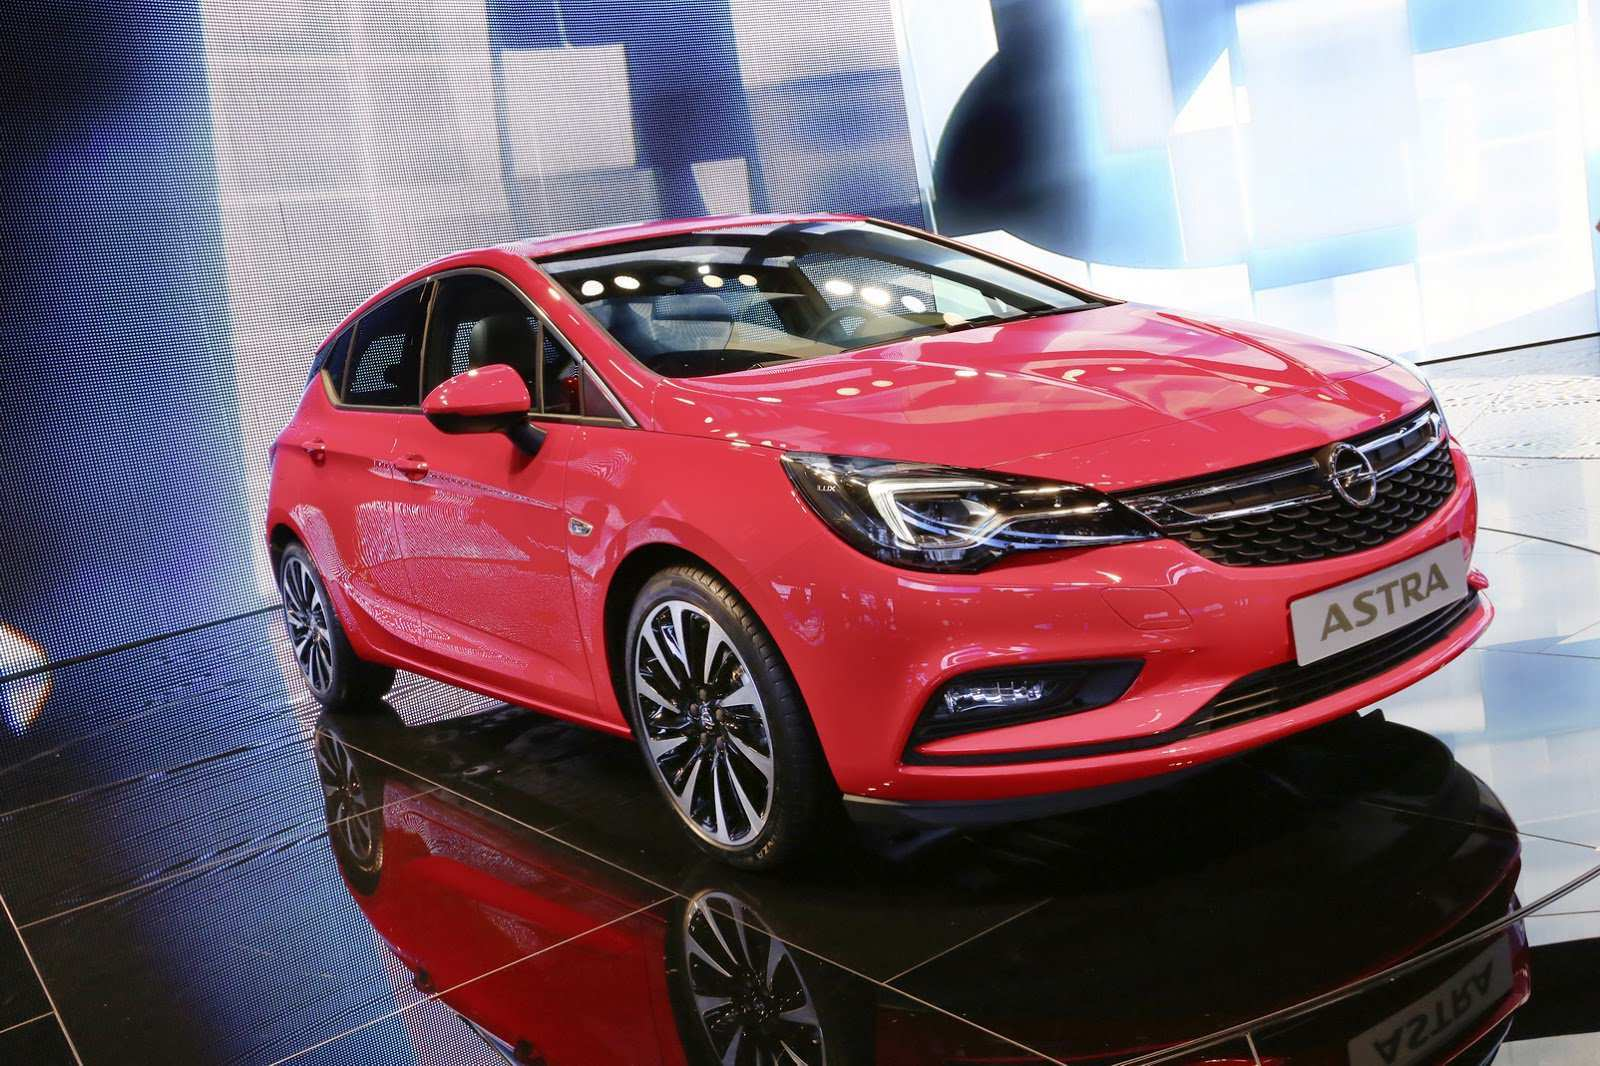 45 All New Opel Astra K 2020 Ratings with Opel Astra K 2020